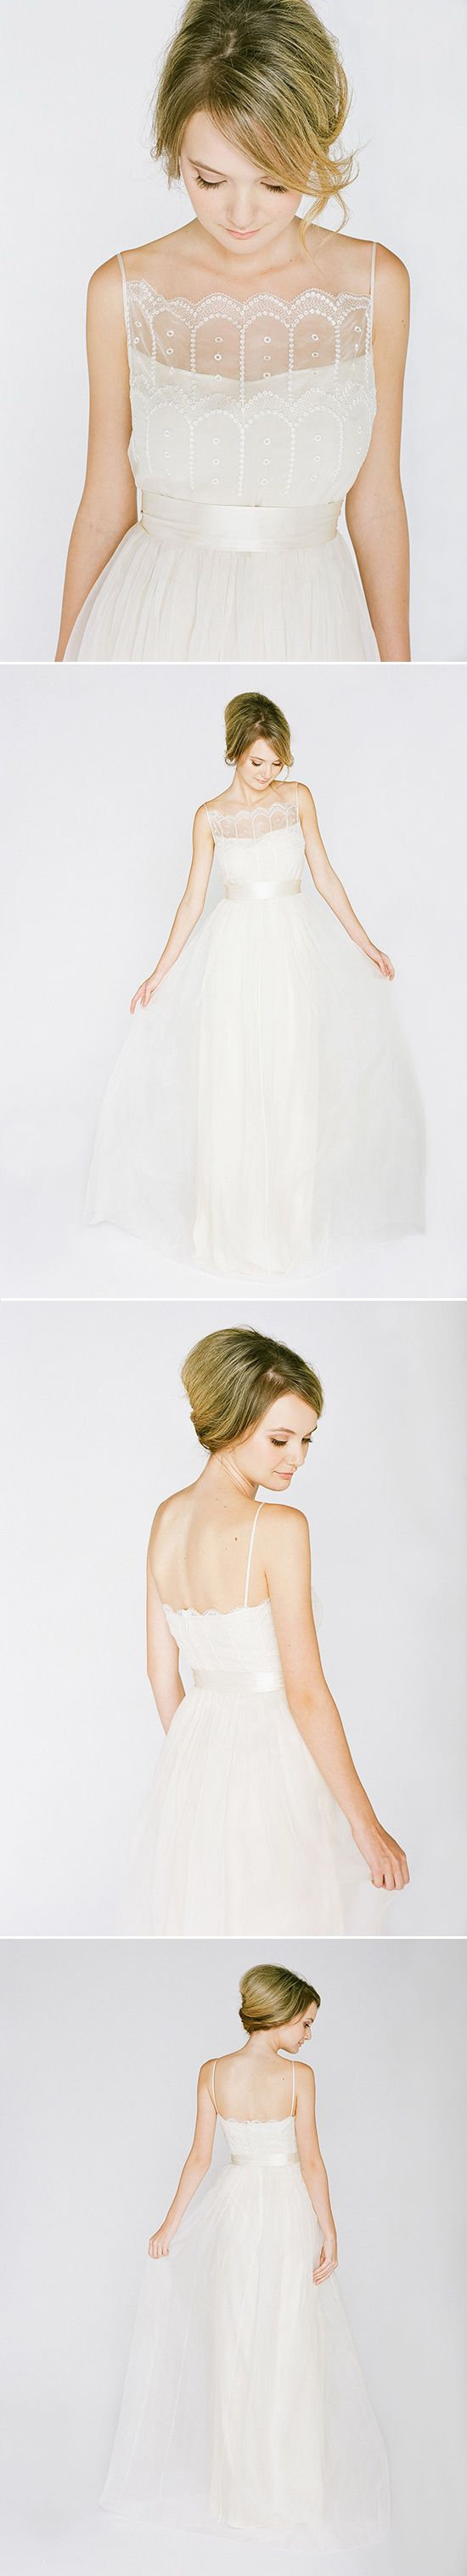 I've been dreaming of something Audrey-esque (http://pinterest.com/pin/74450200060516933/) and this new piece by Saja might be it!? (via Megan Good http://pinterest.com/pin/145733737913423744/)